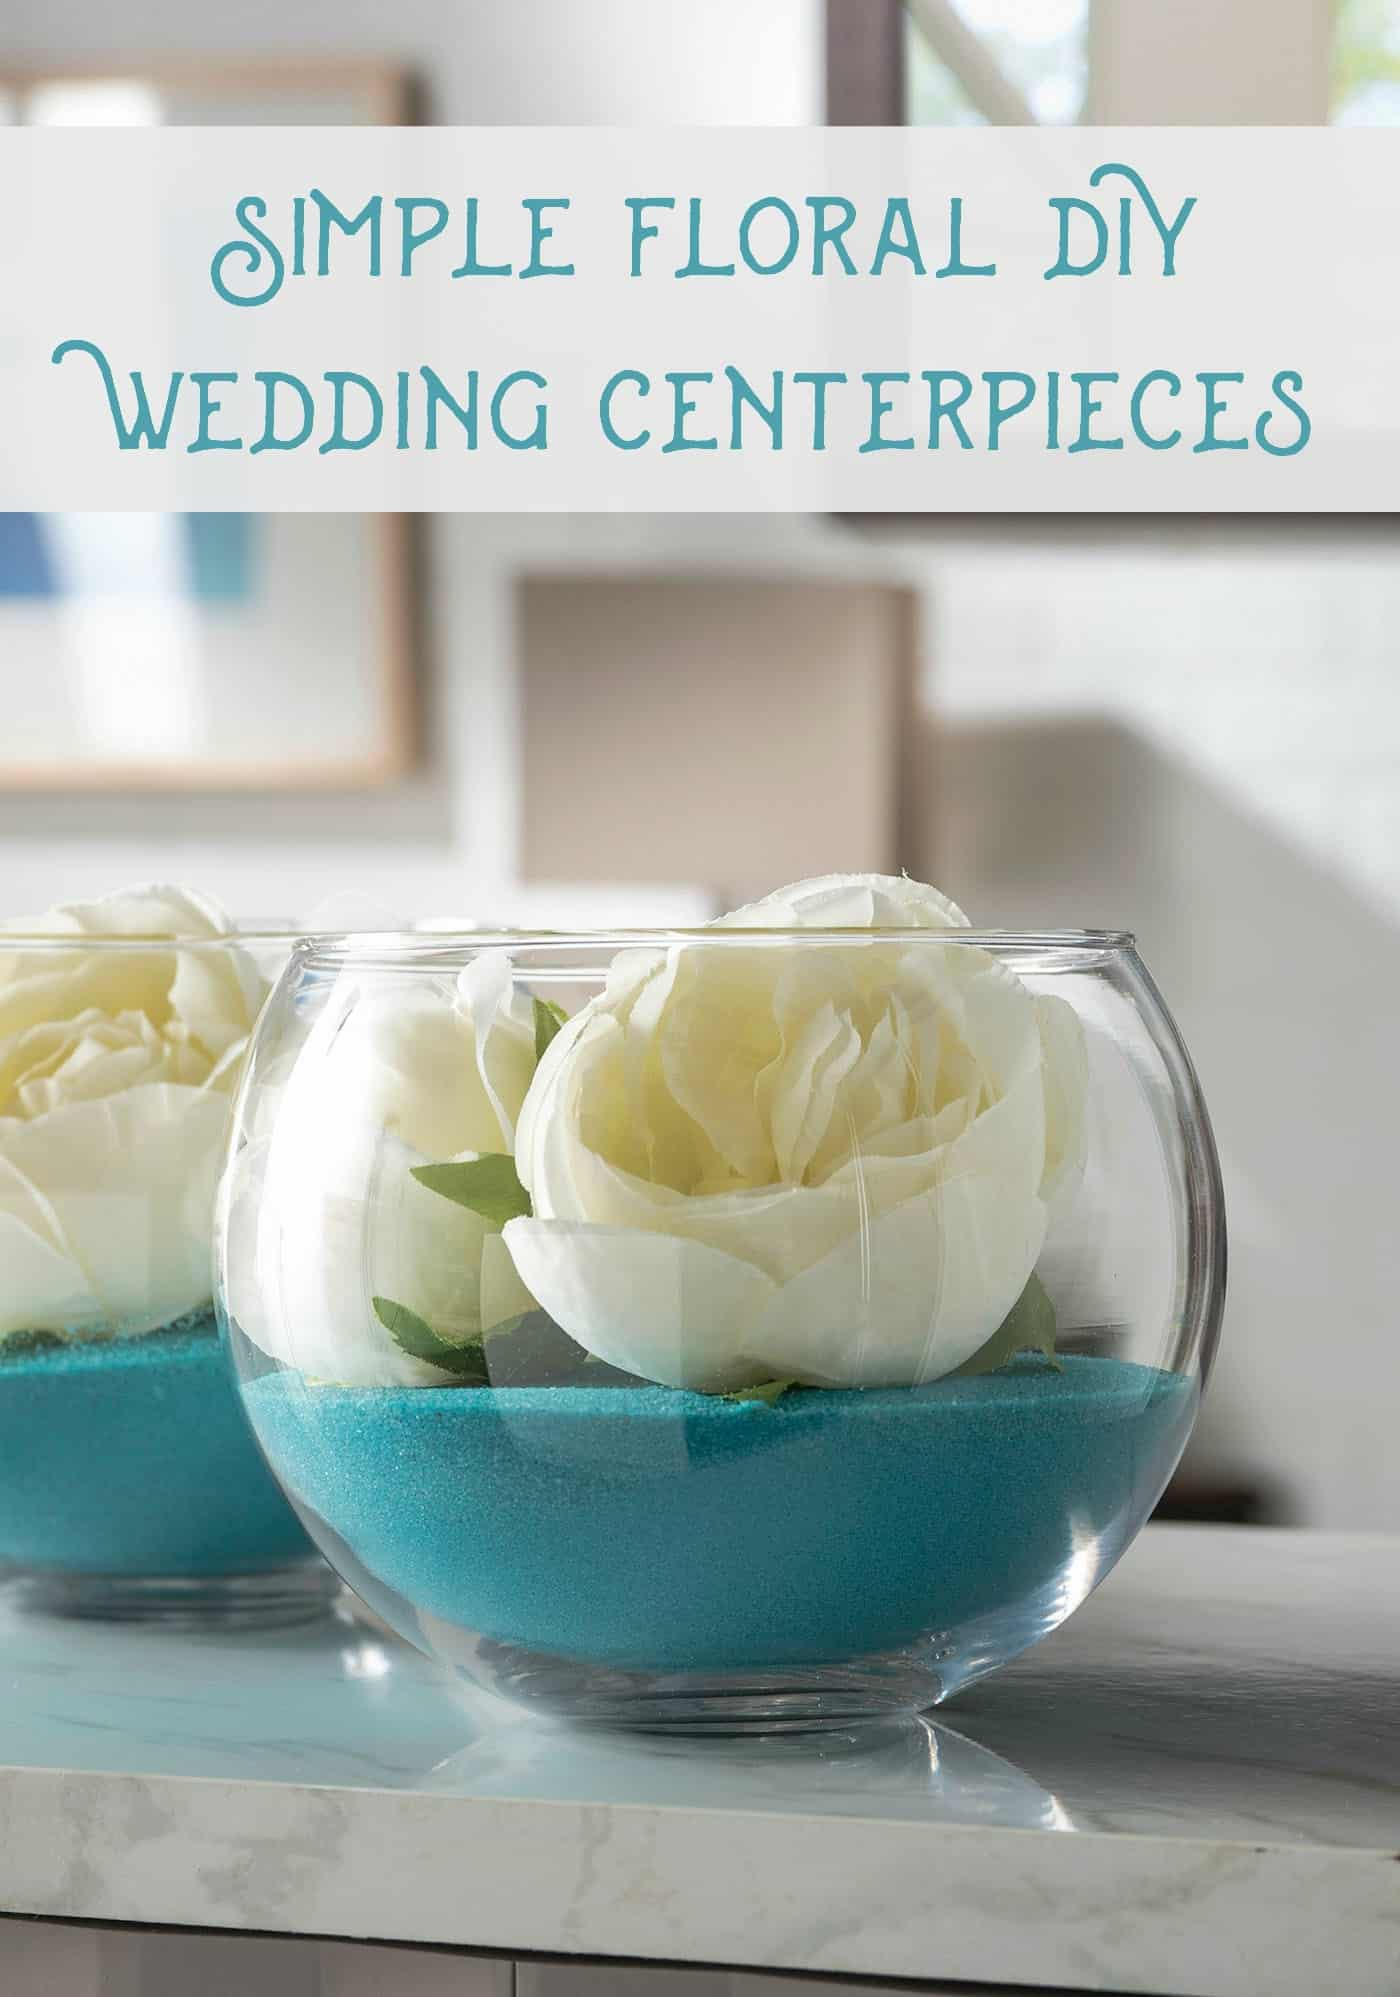 DIY wedding centerpieces using sand and faux flowers